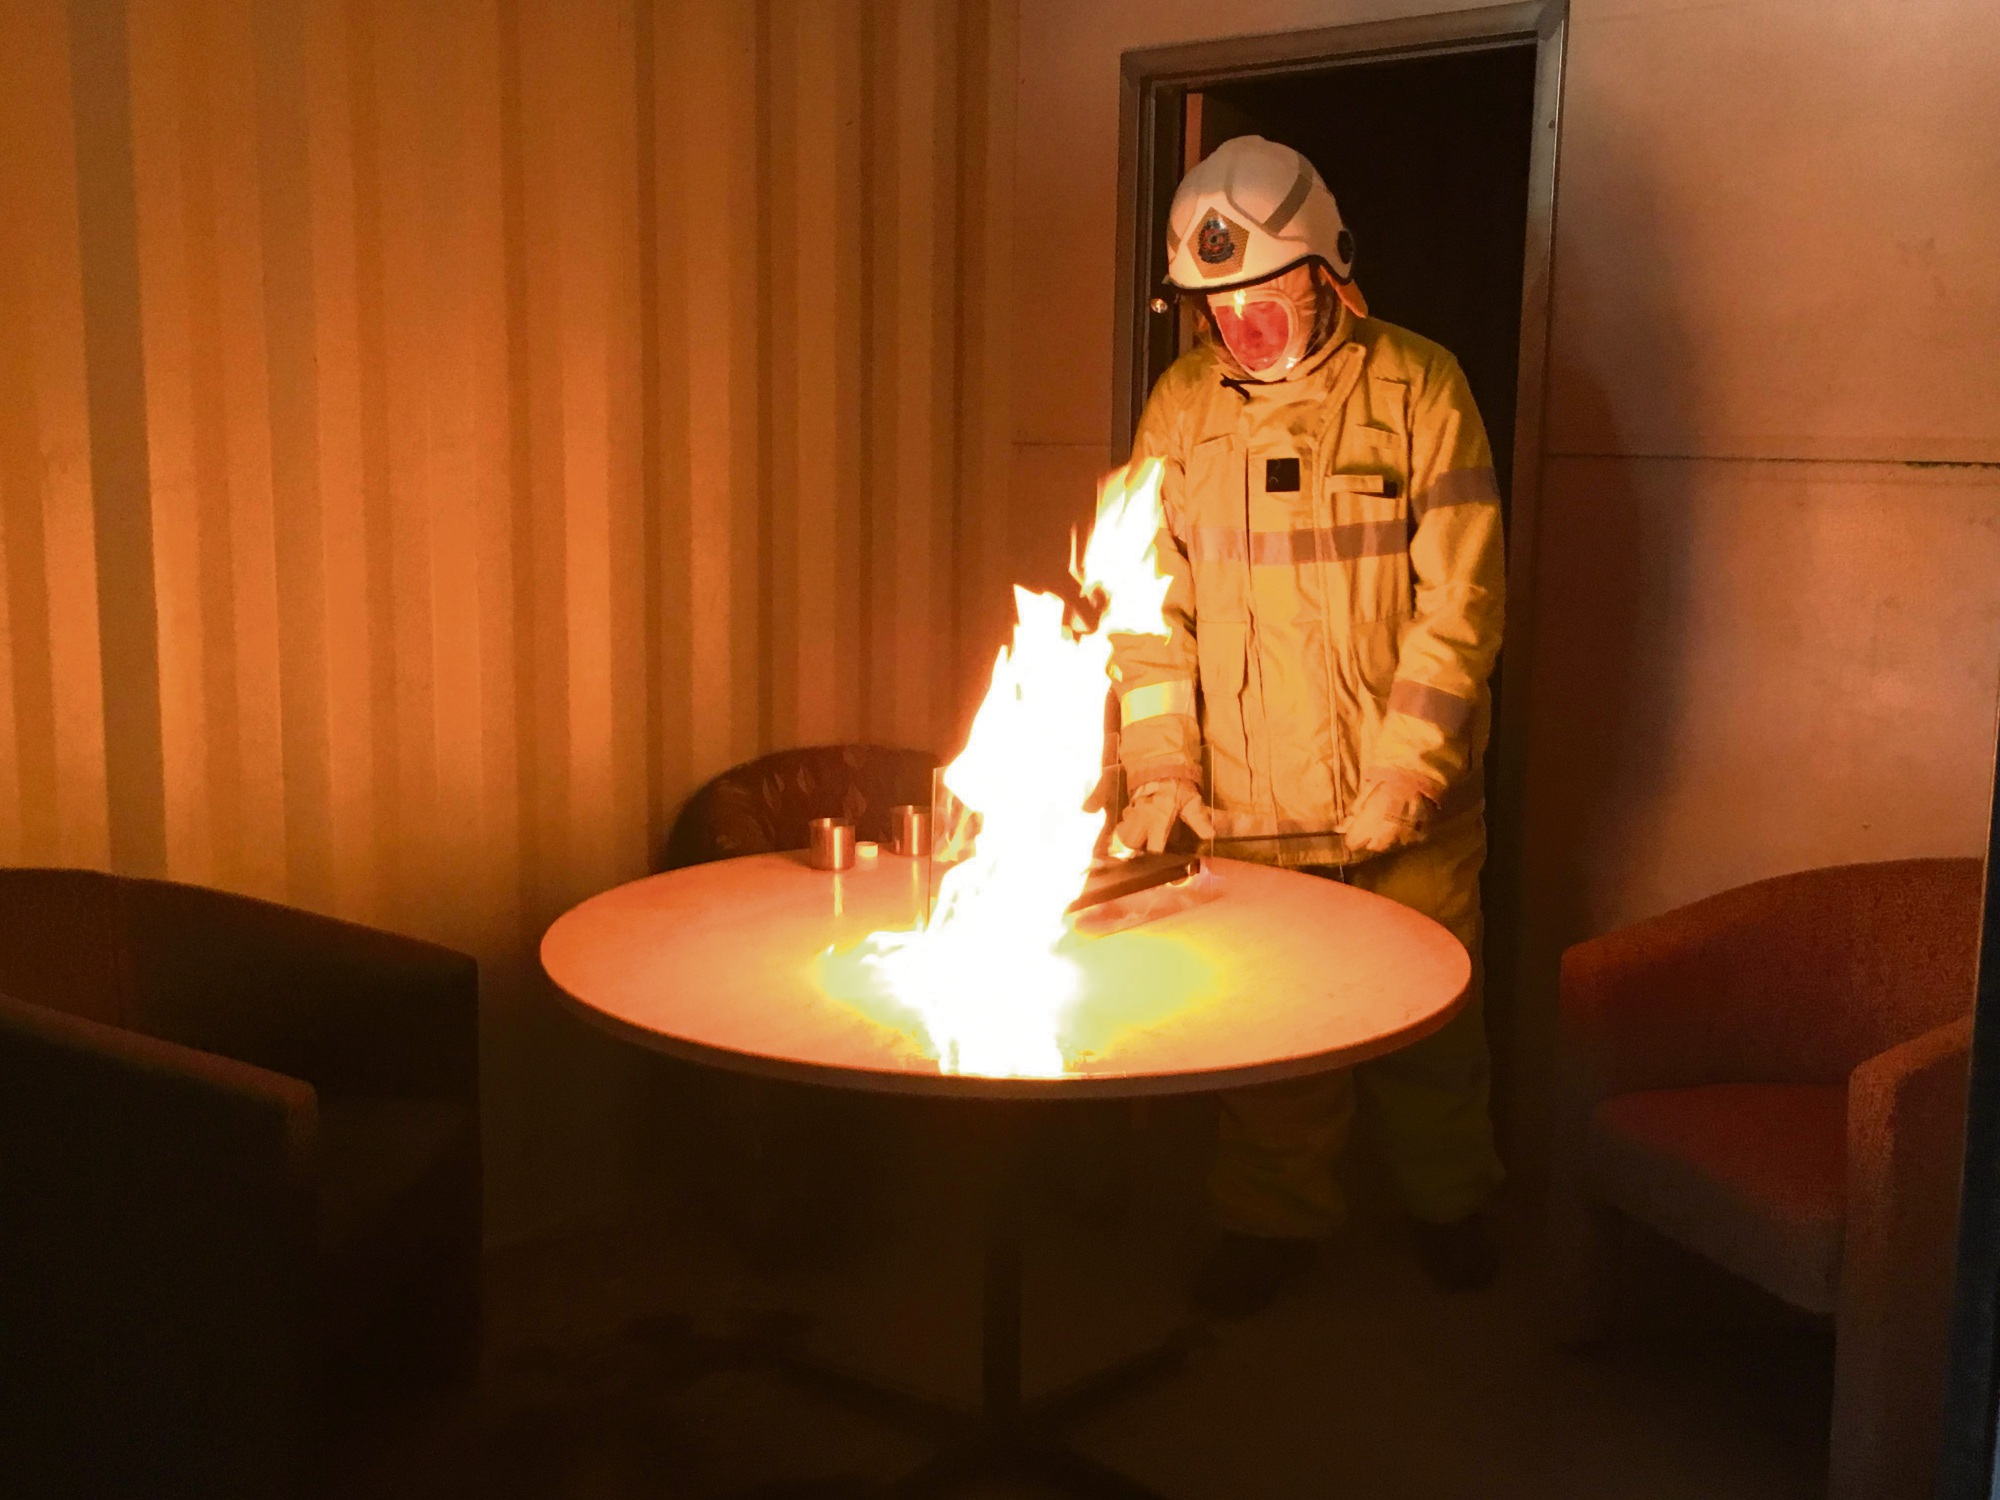 Sale of ethanol burners ban in WA extended for another month